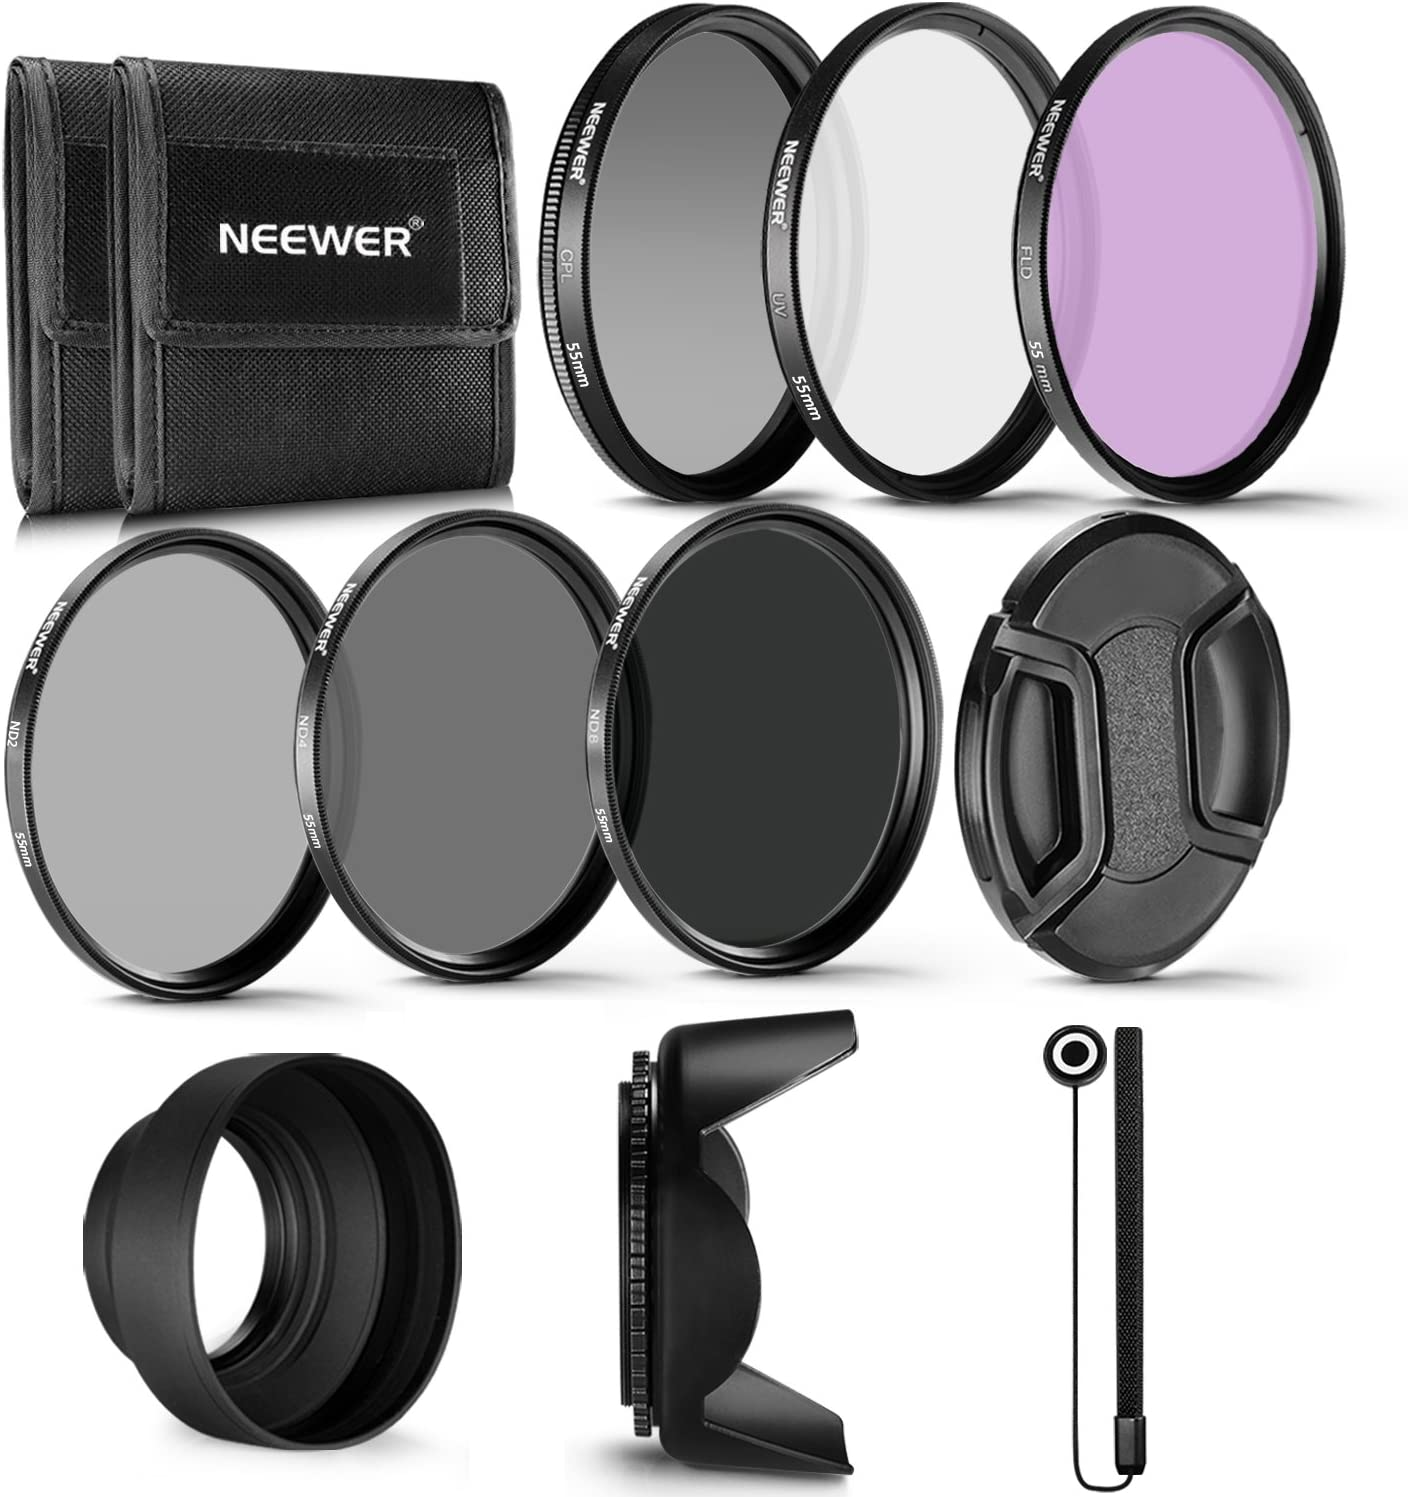 Neewer 55MM Professional UV Albuquerque Mall CPL Brand new FLD ND D Lens and Filter Neutral